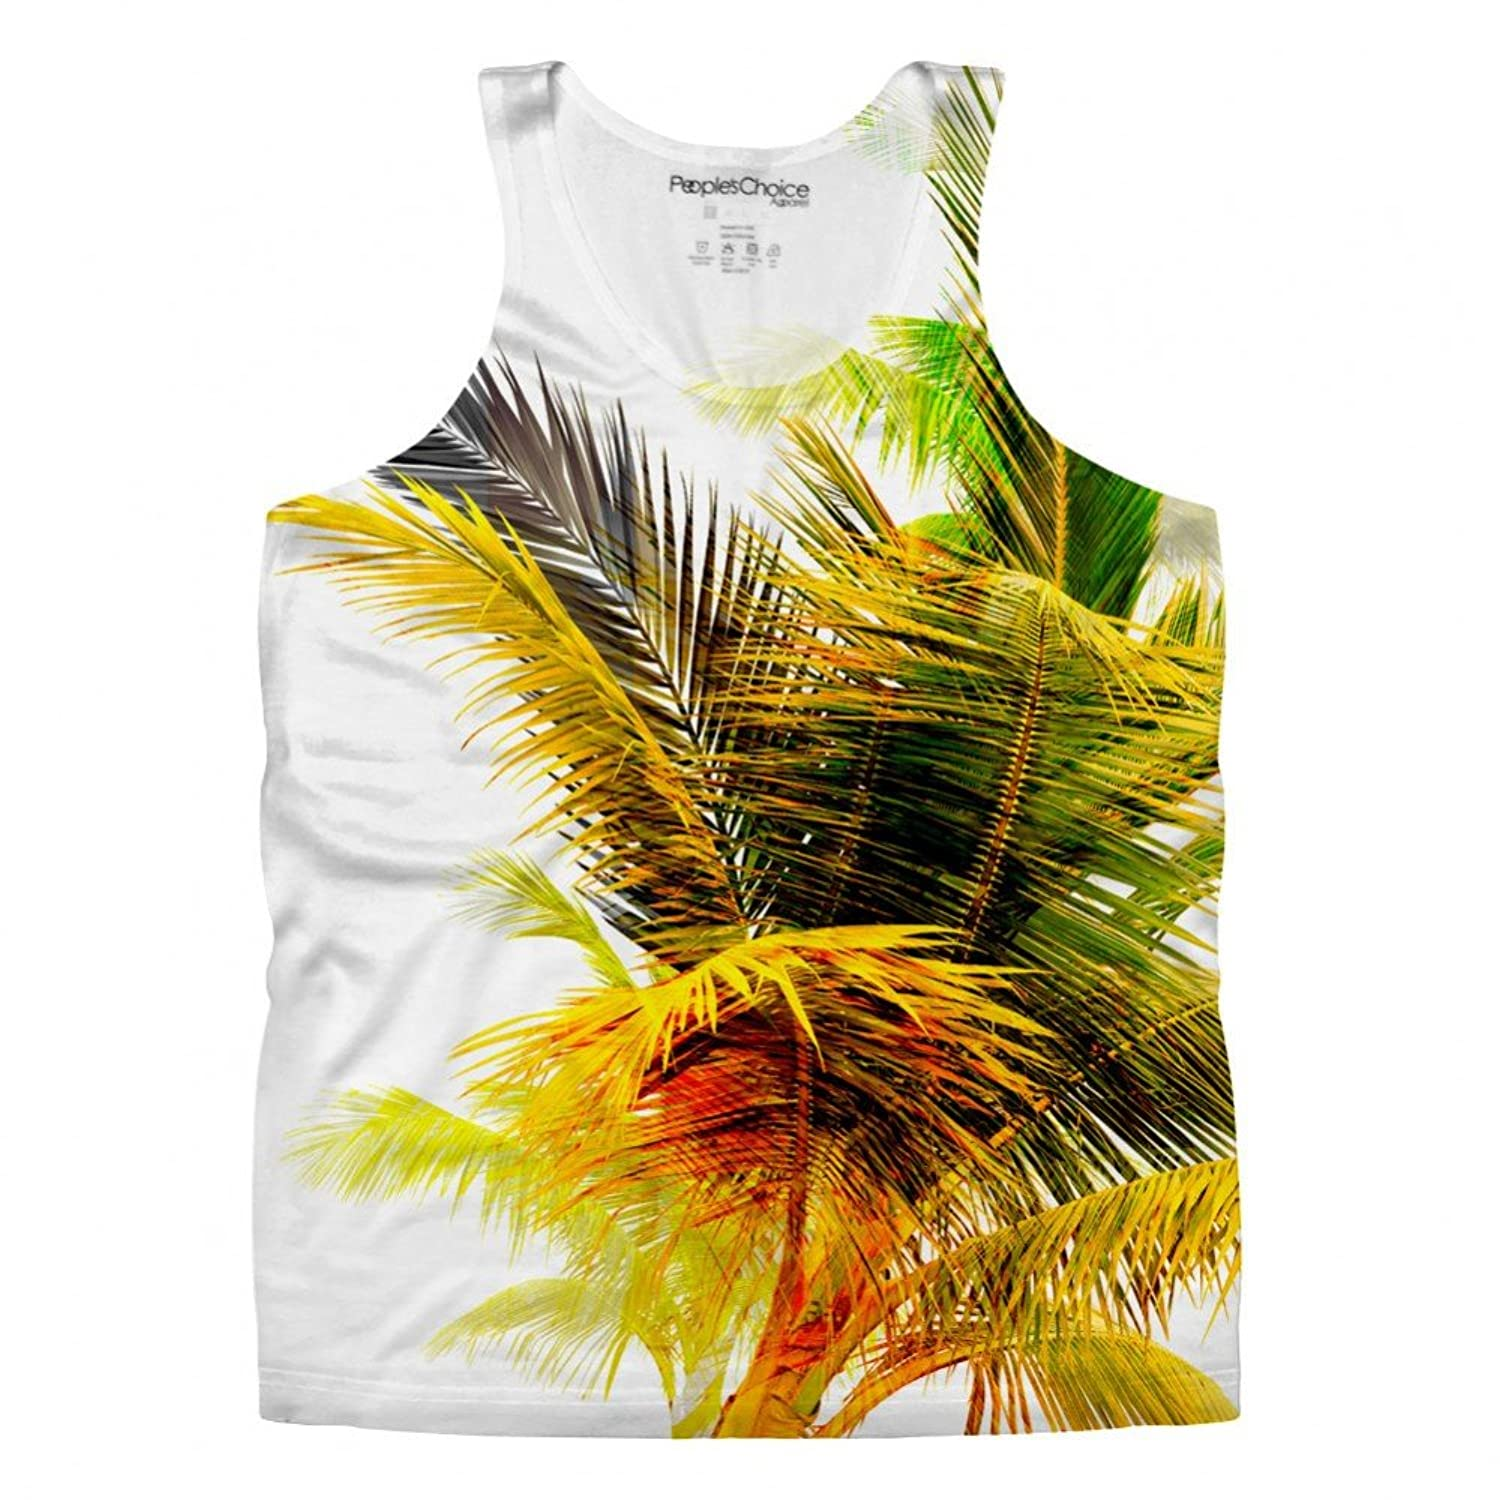 Palm Trees Tropical for Mens Tank Top by Peoples Choice Apparel